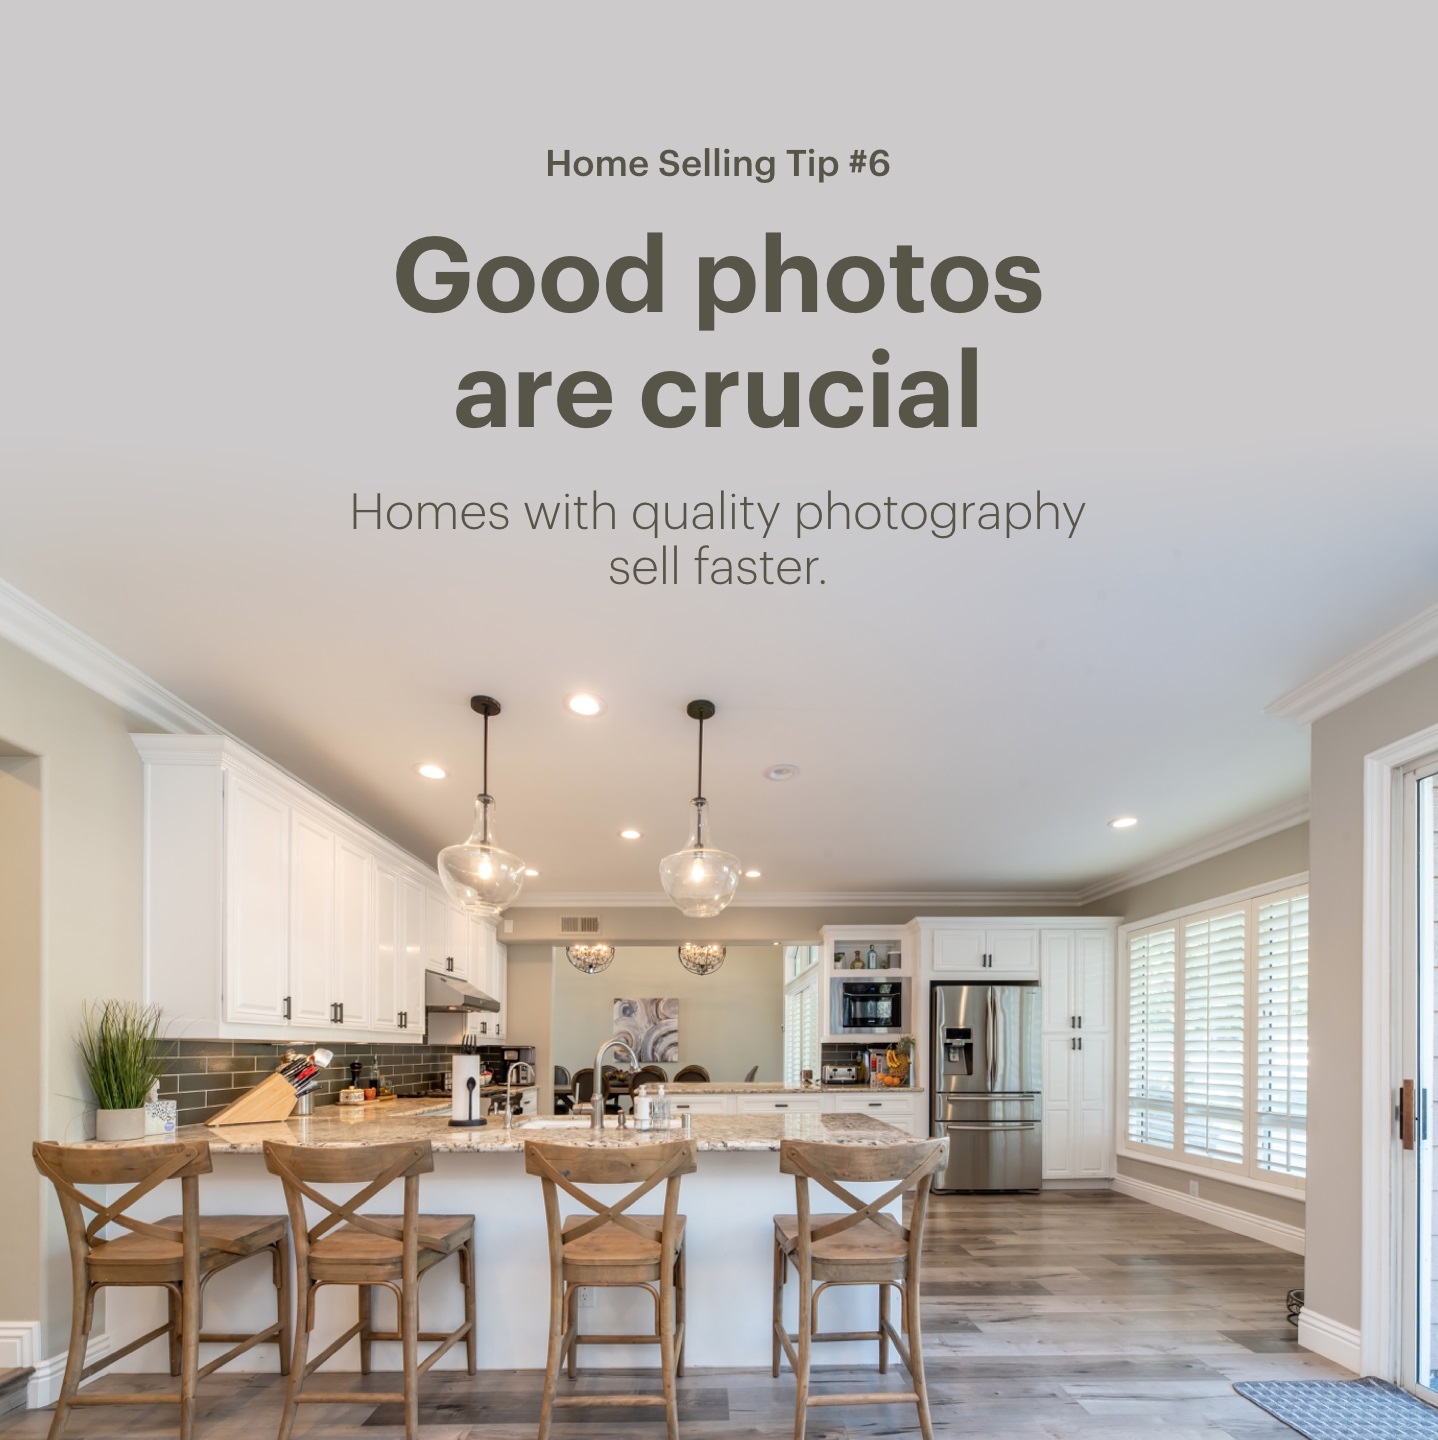 Home Selling Tip #6: Good Photos Are Crucial